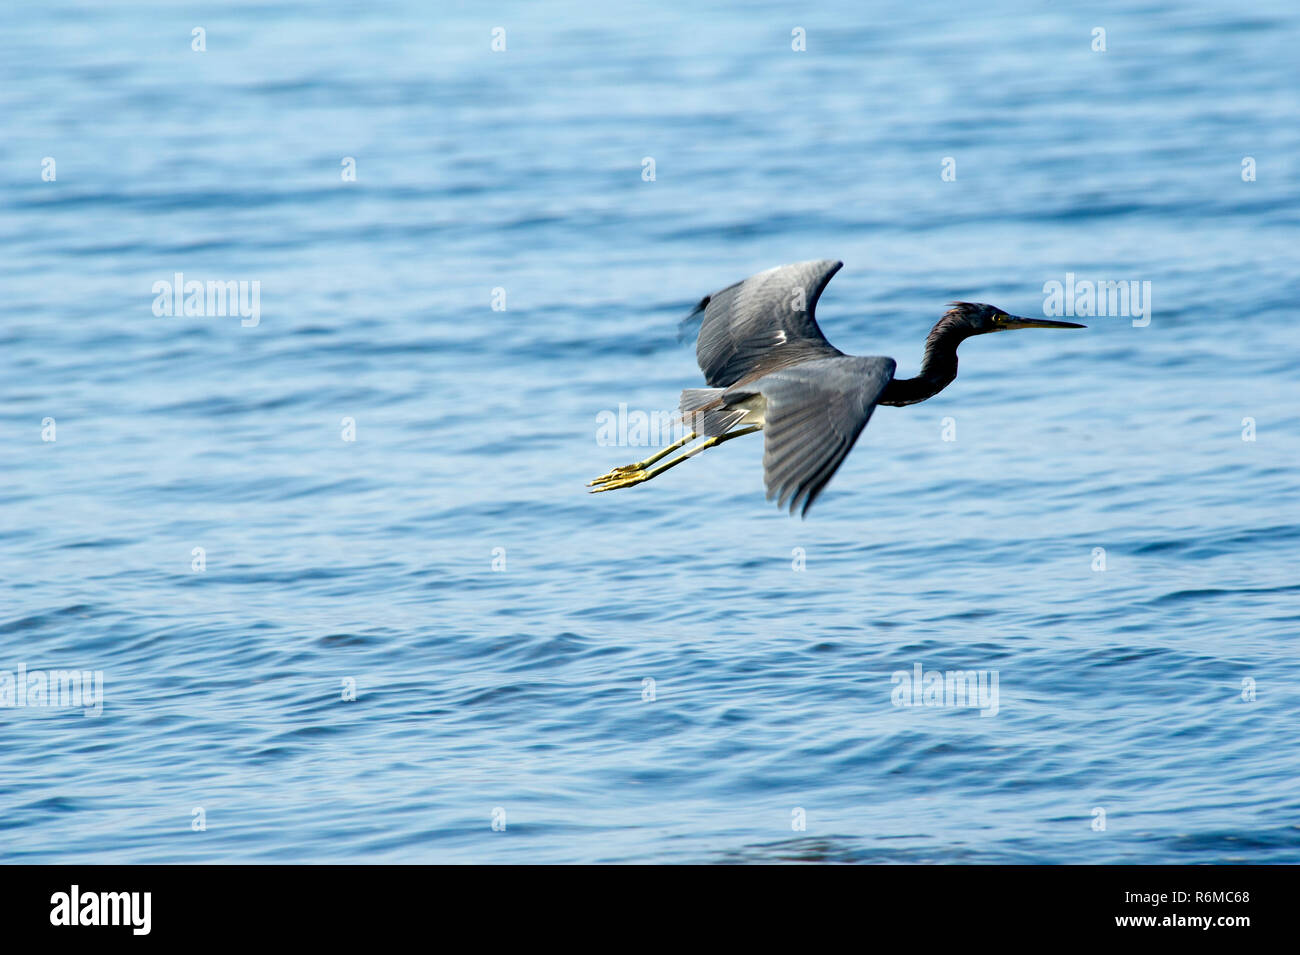 Tricolored Heron (Egretta tricolor) on a black sand beach at Papagayo Bay, Costa Rica. - Stock Image